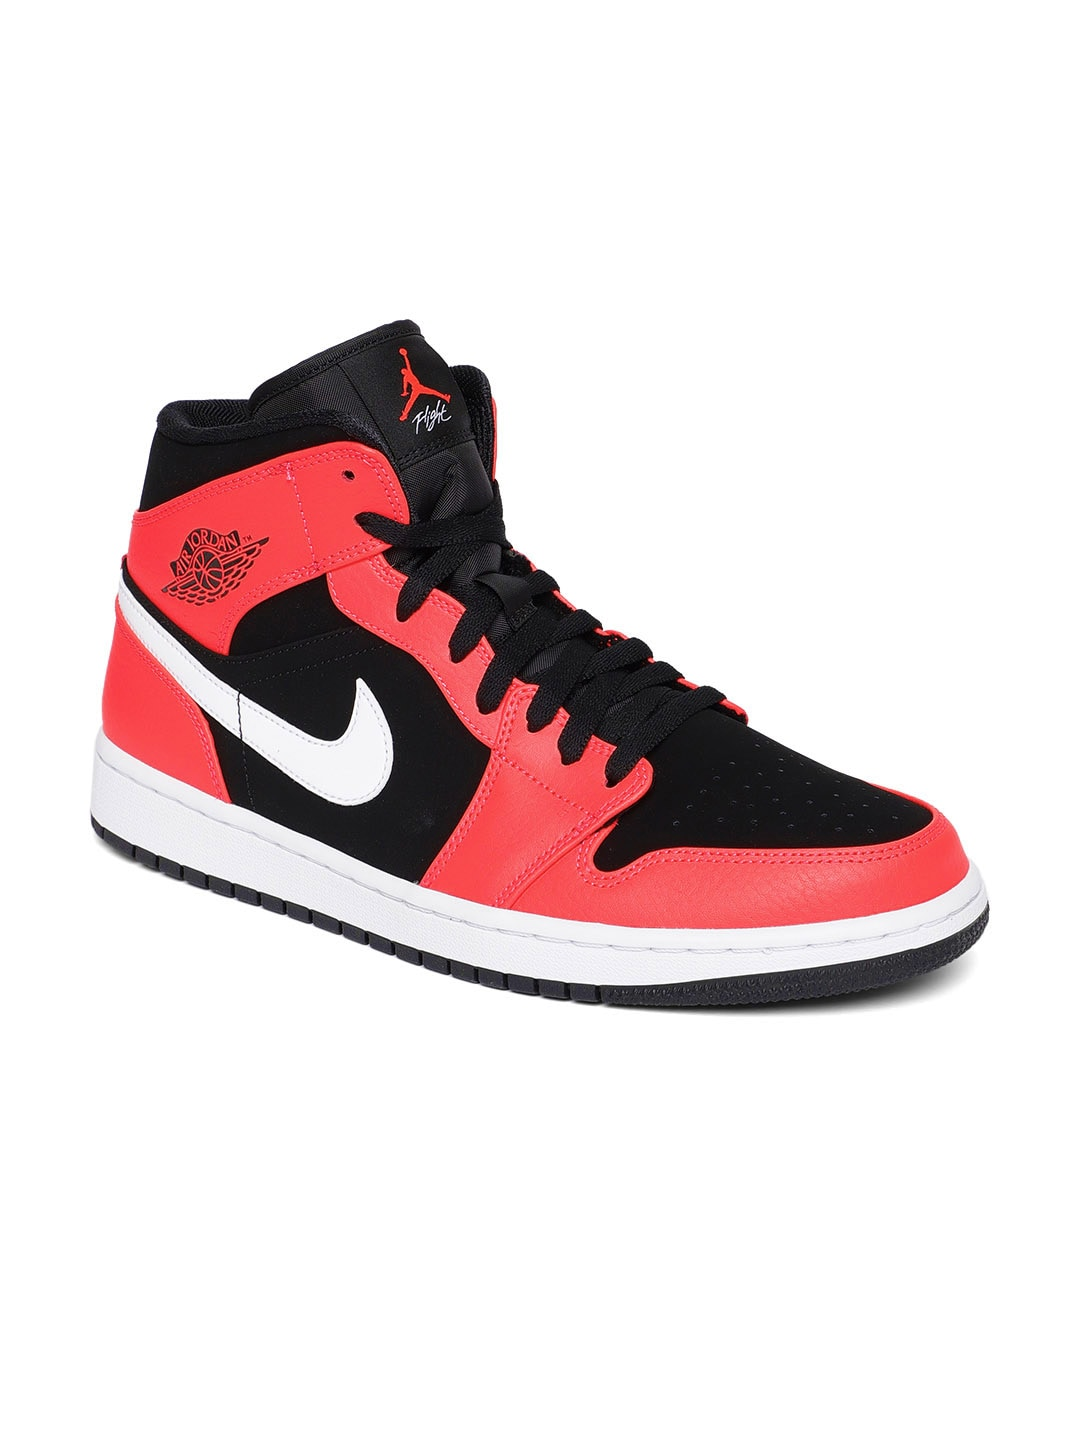 0b71ed6bb31d55 Nike Jordan - Buy Original Nike Jordan Products Online